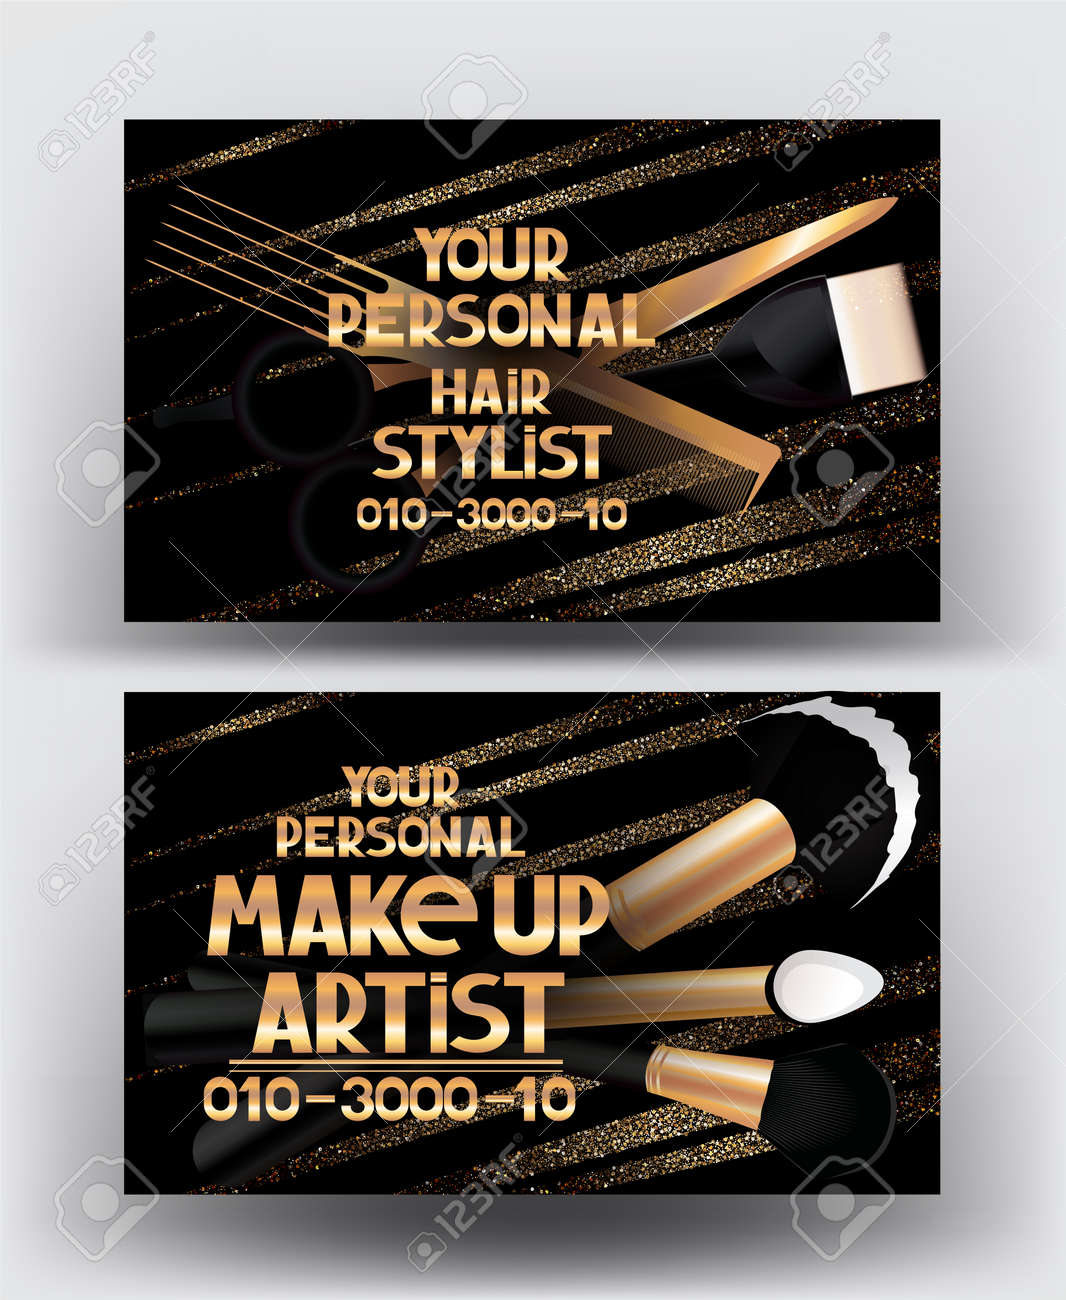 Nice business cards for hair stylist photos business card ideas hairstylist and makeup artist gold business cards with tools colourmoves Image collections